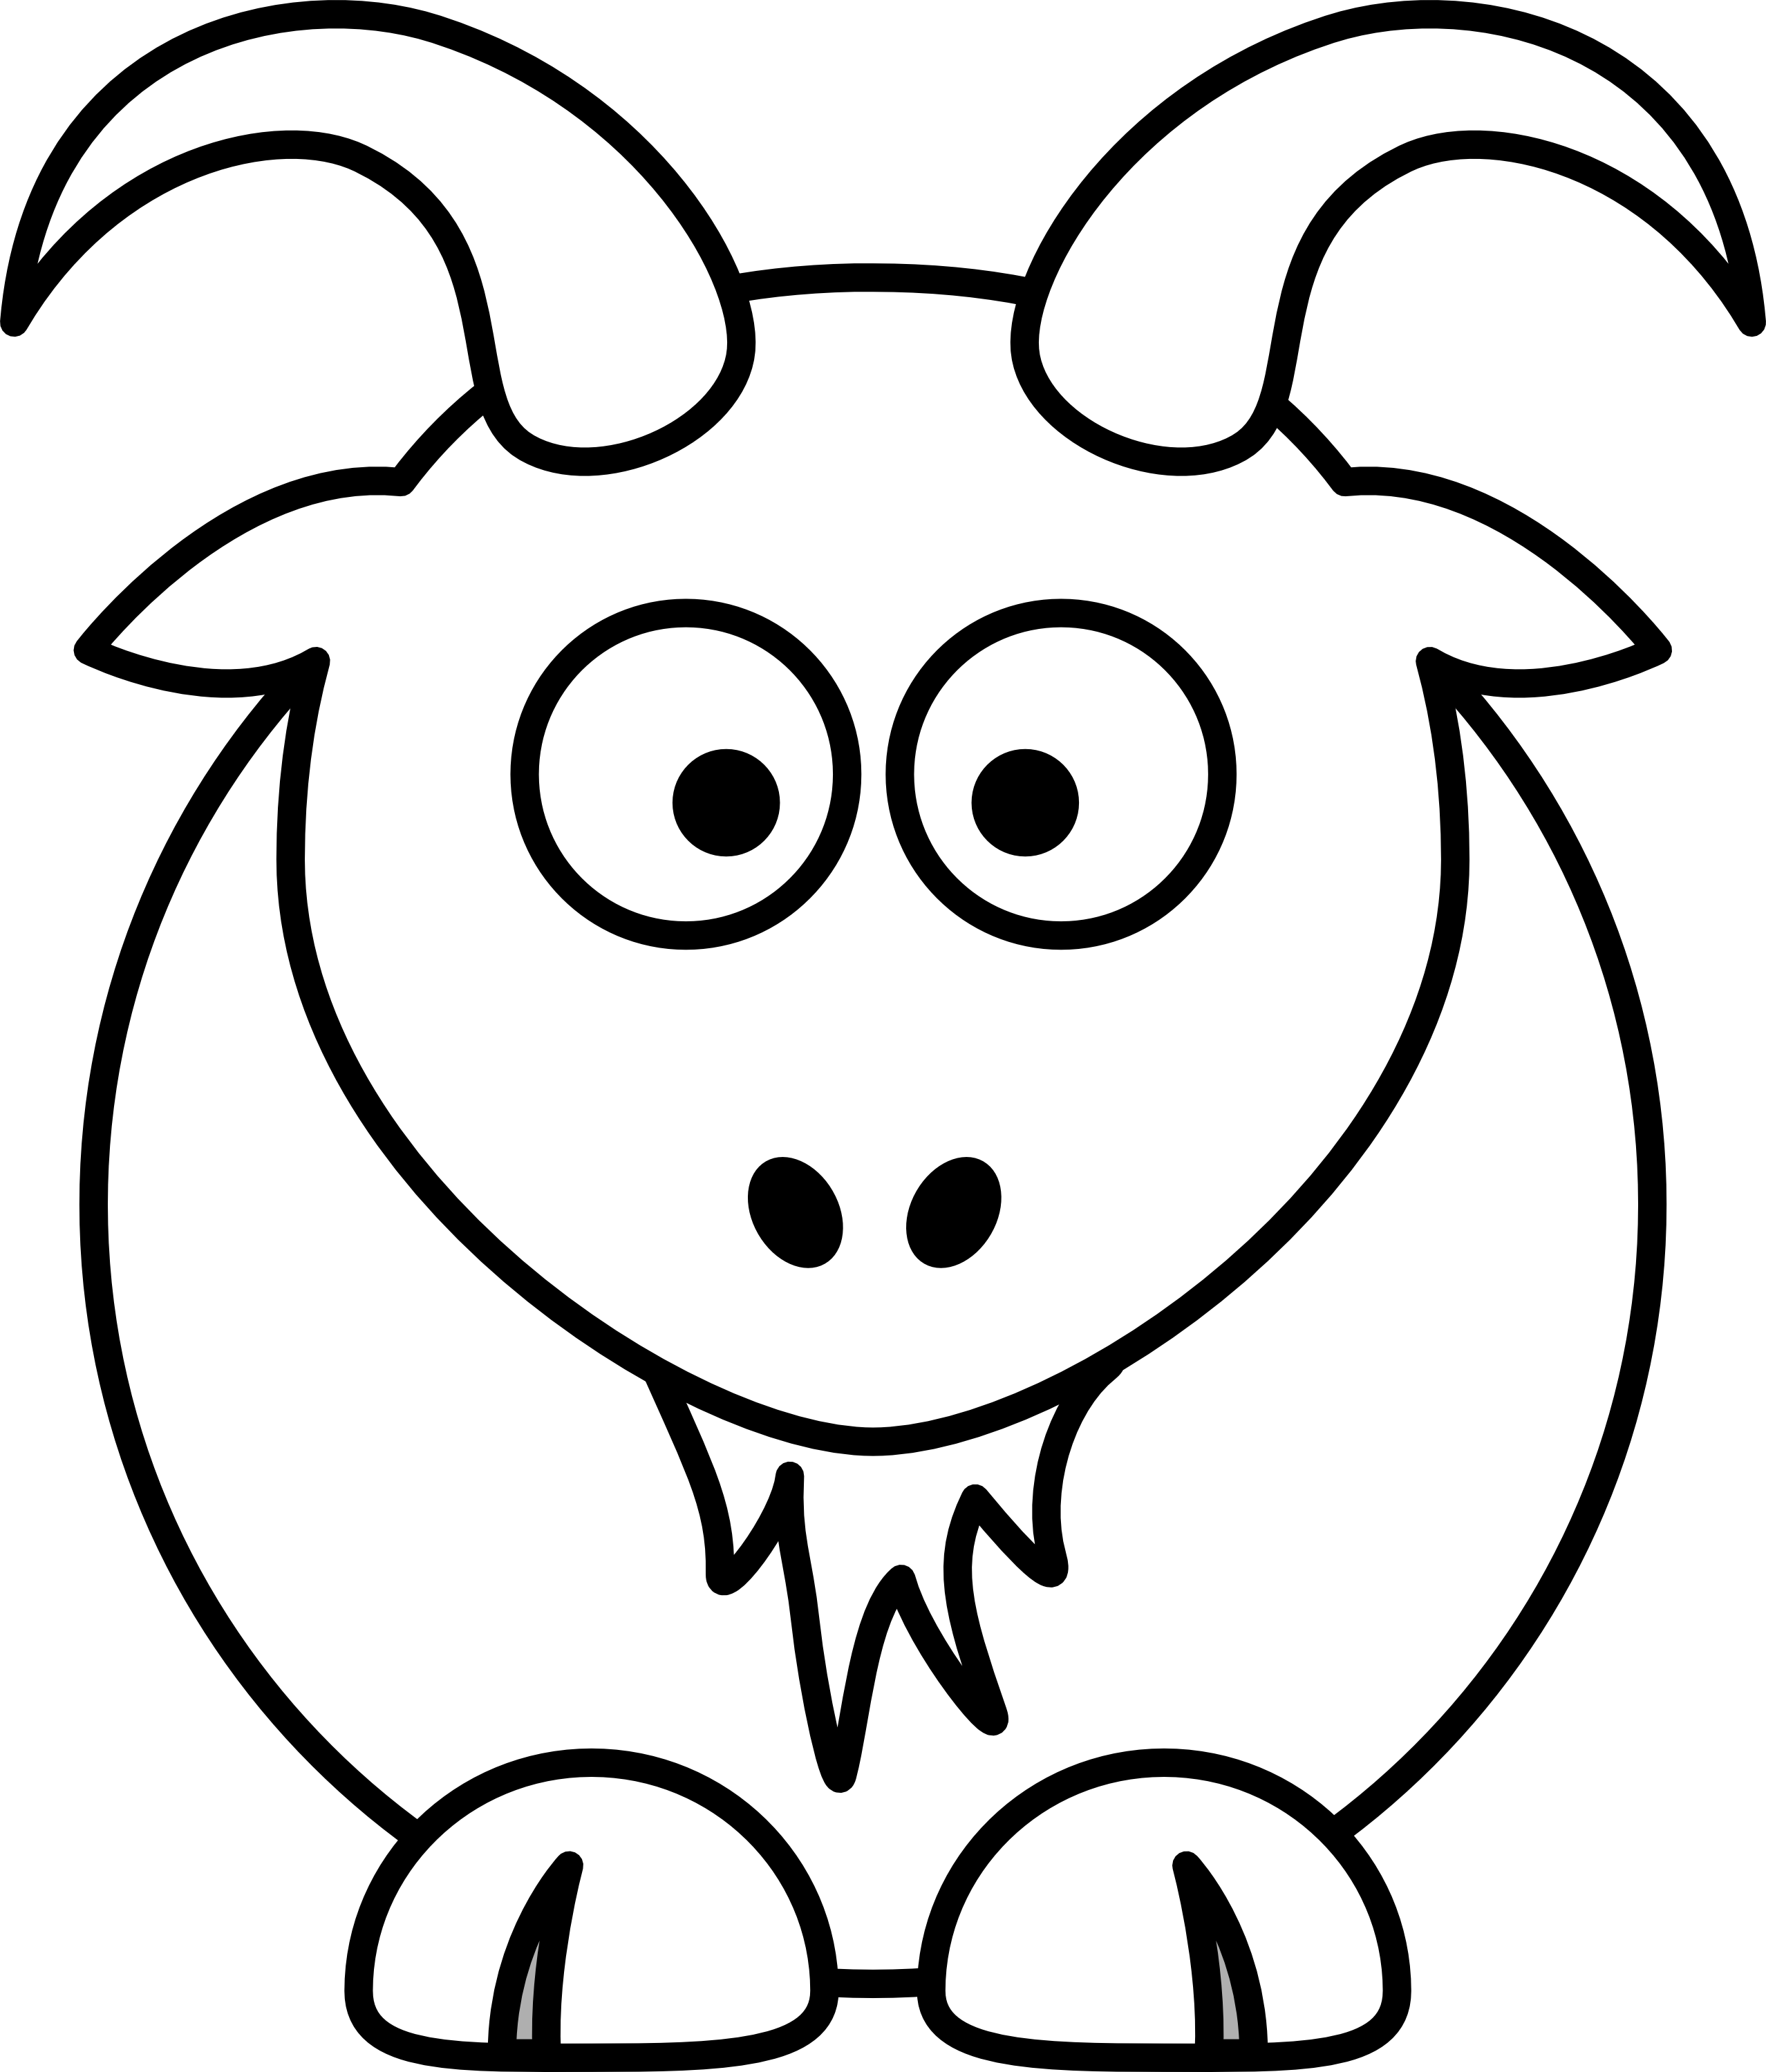 Number One Clipart Black And White-number one clipart black and white-14